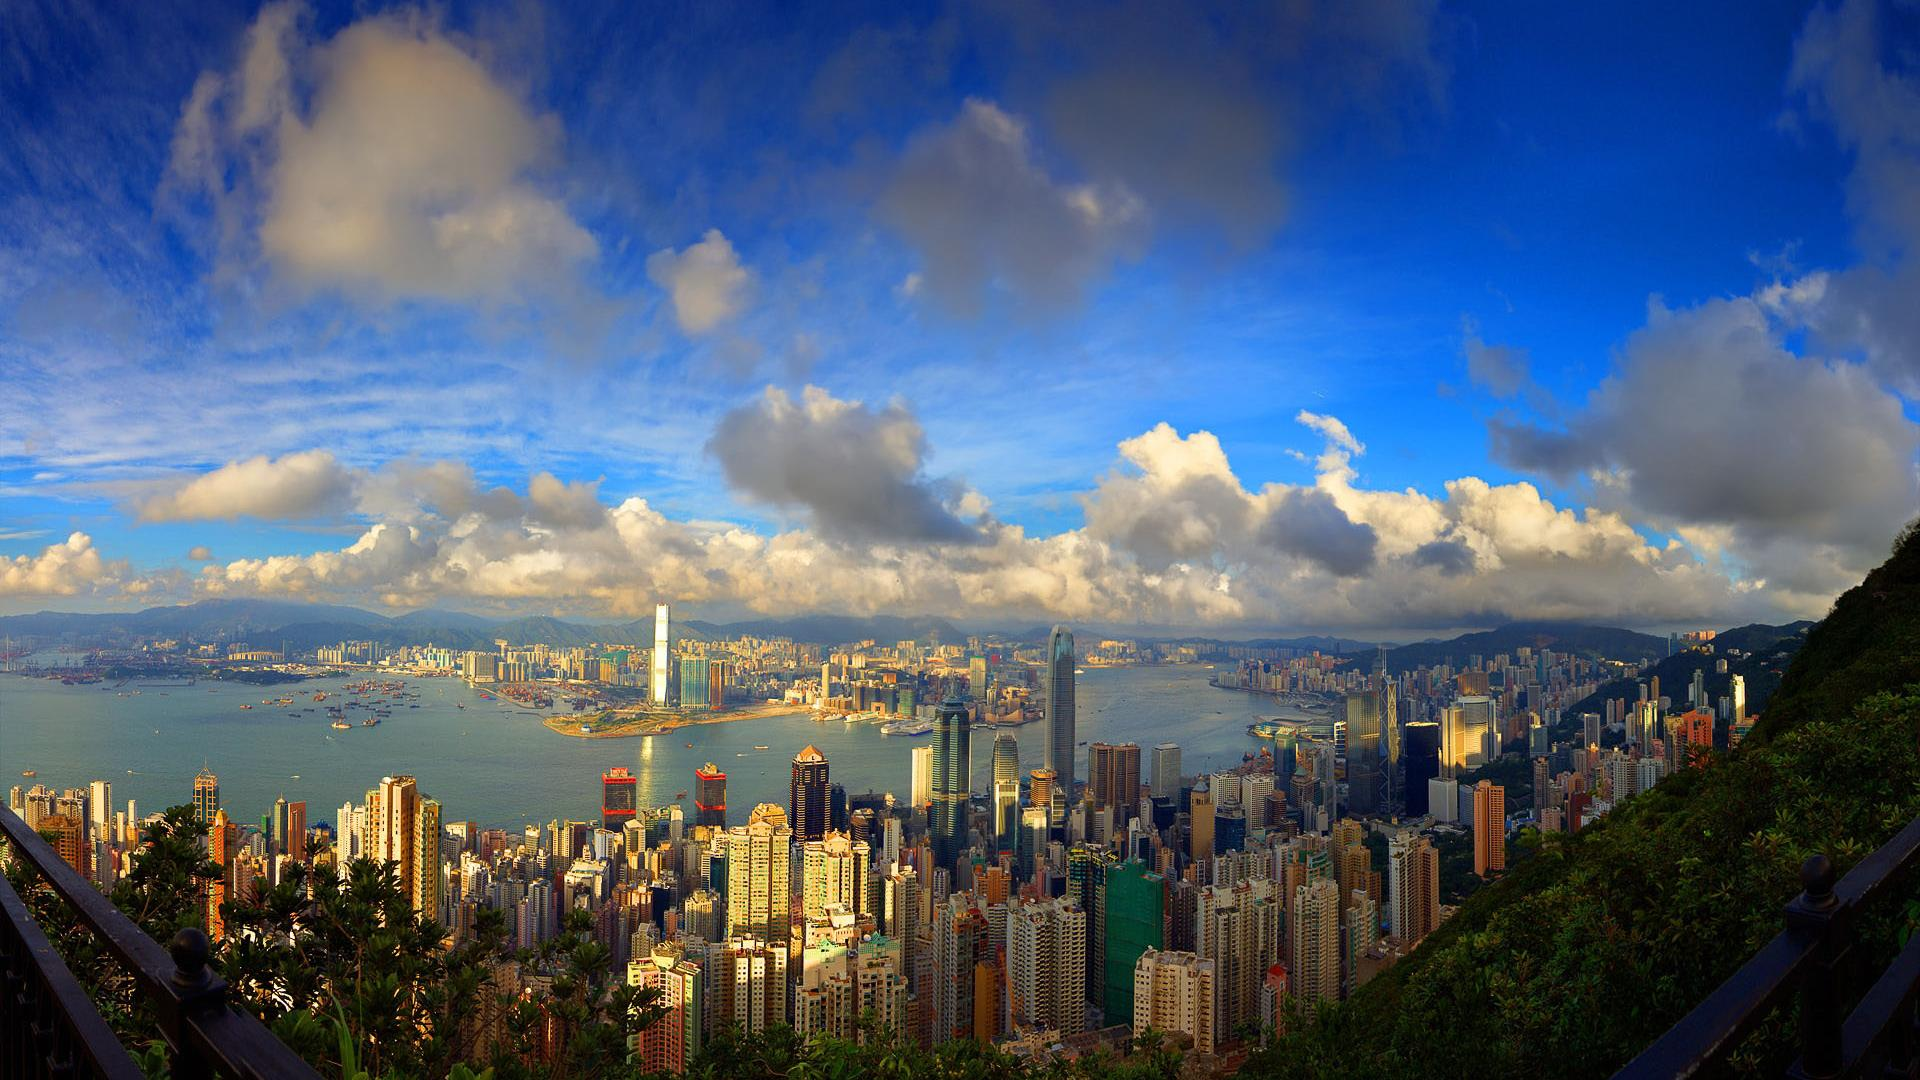 Hd Awesome View Of Hong Kong Wallpaper Download Free 1920x1080px